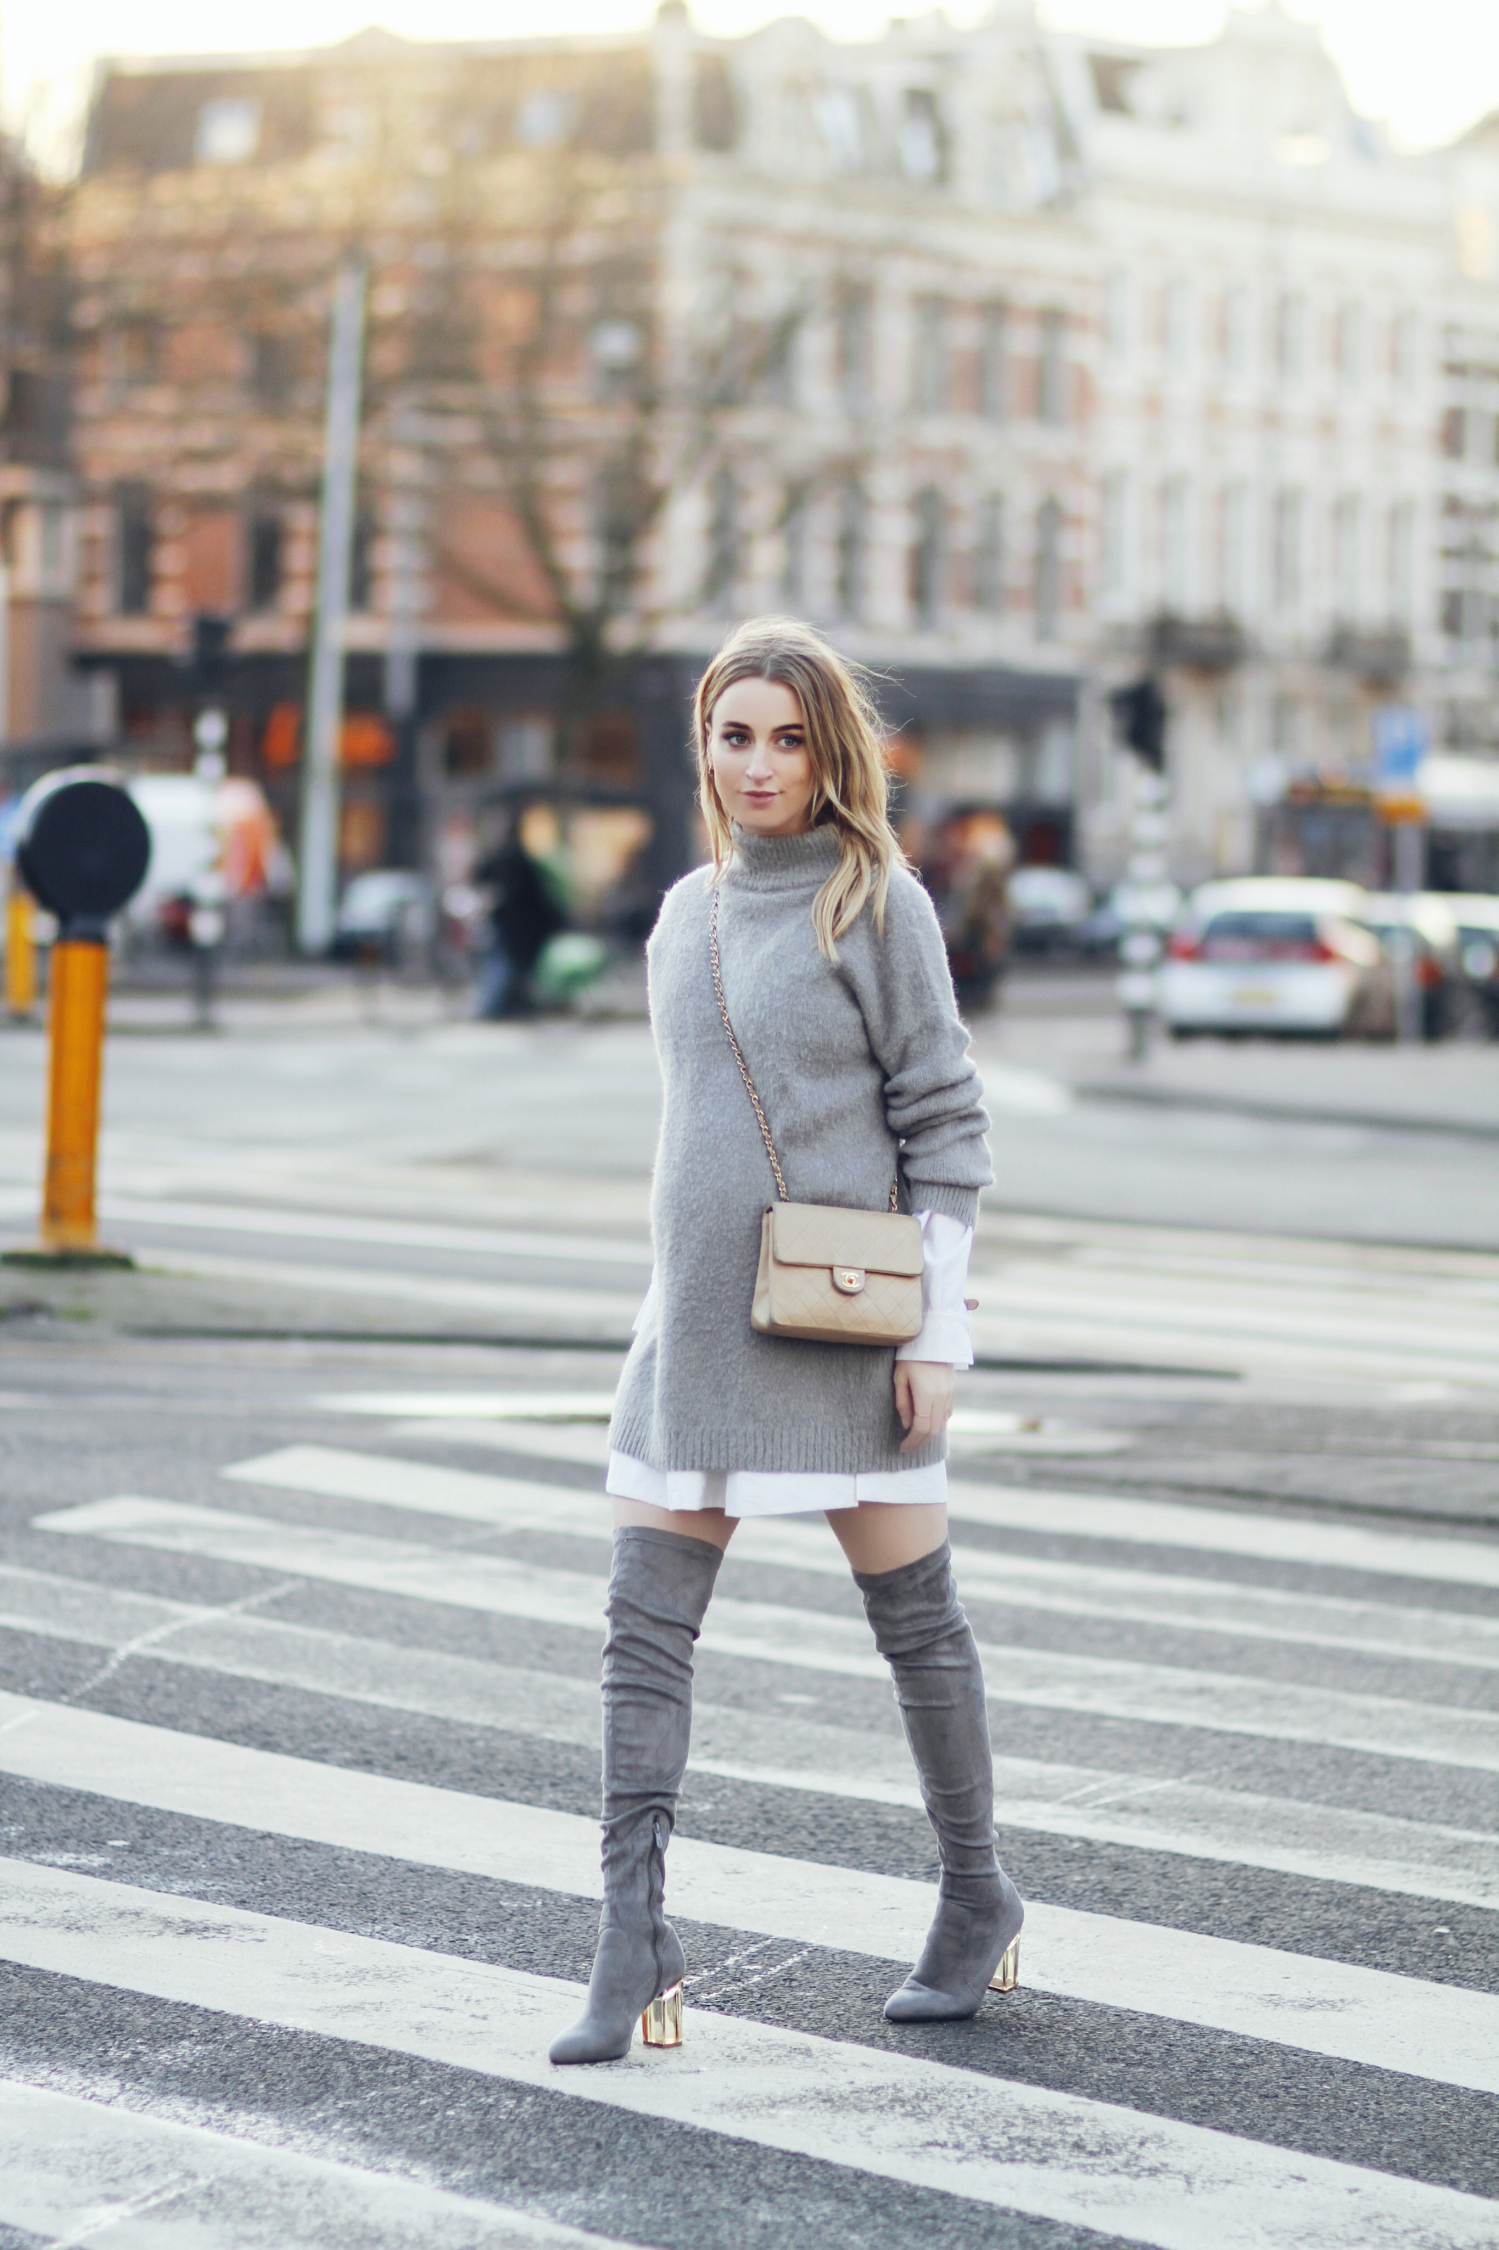 Noor De Groot is wearing the grey on grey trend through a knit sweater and thigh high boots. Not only is this style perfect for the winter cold, but it is also sophisticated and classy, and we love it! Knit: Asos Blouse: Asos Boots: Public Desire Bag: Chanel